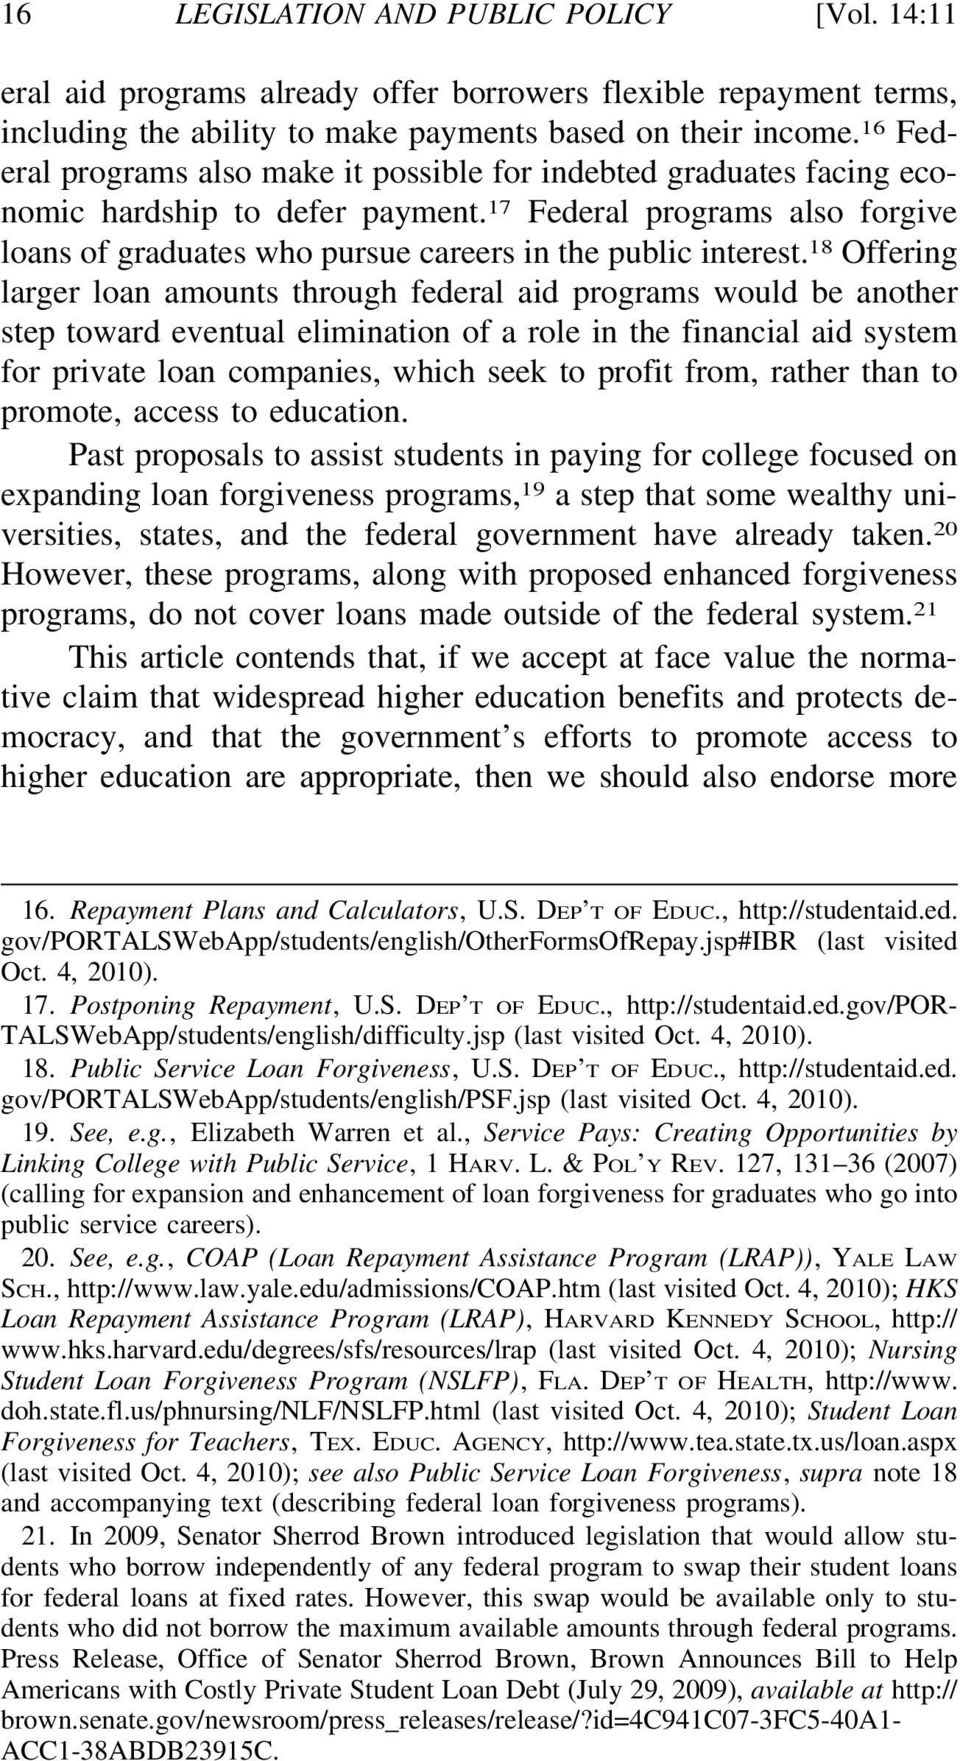 17 Federal programs also forgive loans of graduates who pursue careers in the public interest.